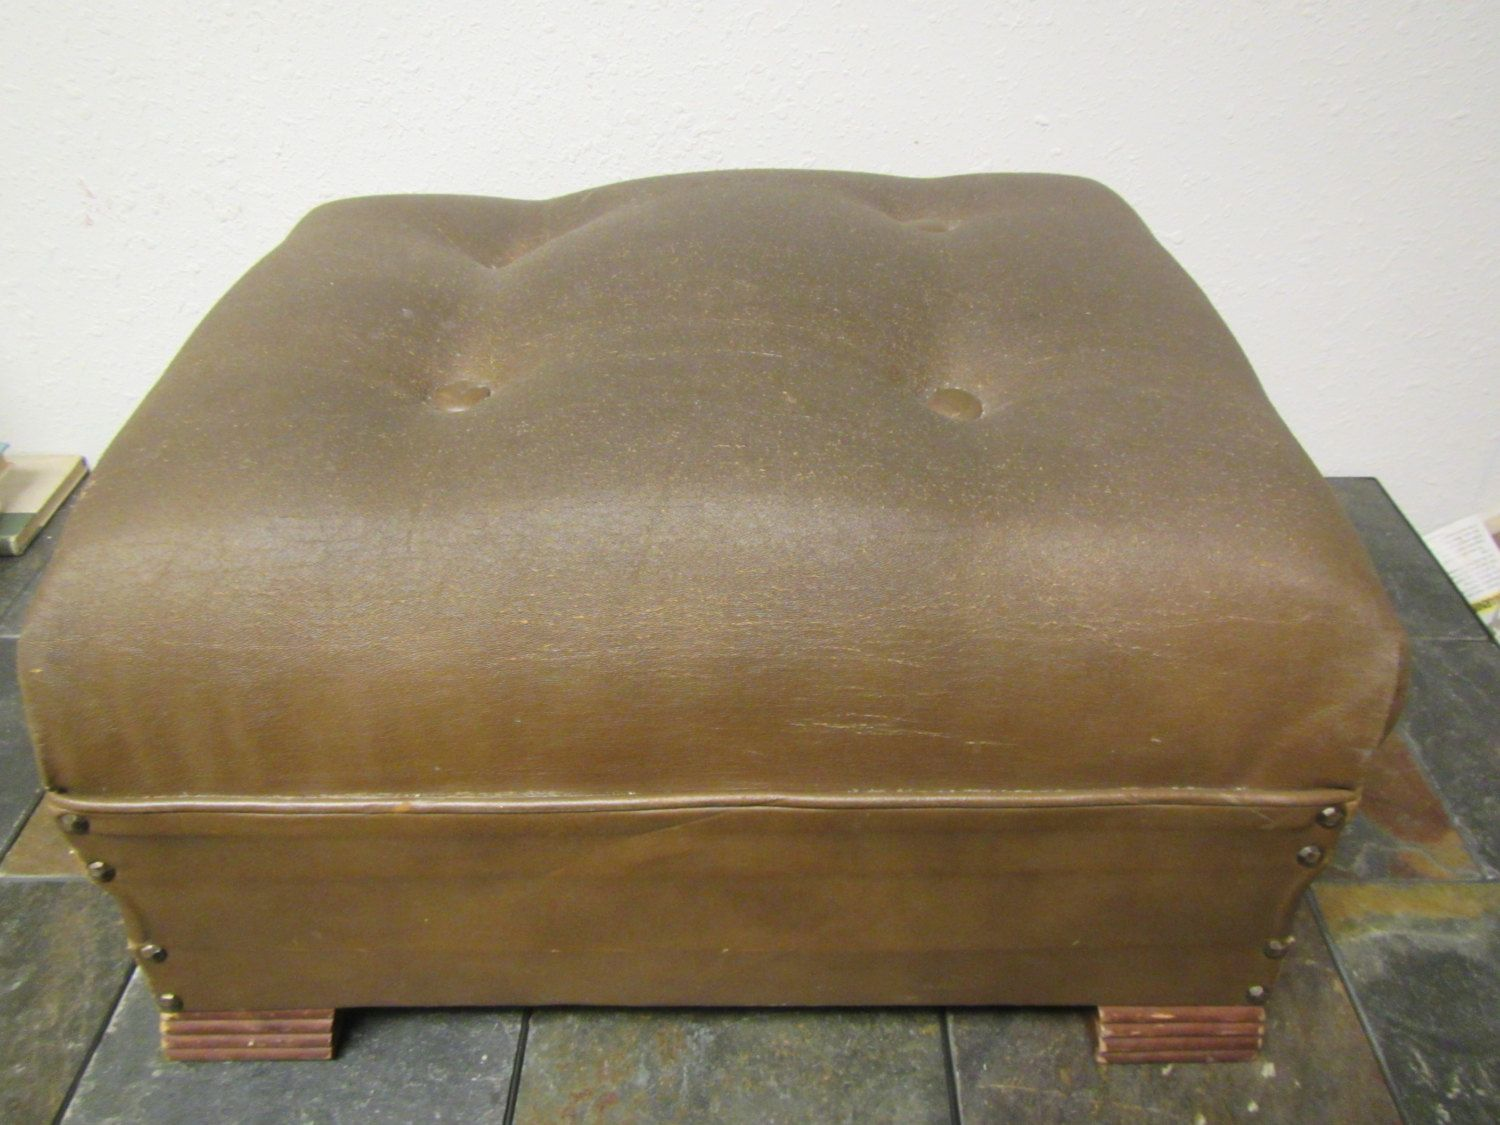 Vintage Leather Ottoman Hassock Foot Stool Leather Covered Brown Footstool With 4 Covered Buttons On Top Vintage Leather Leather Ottoman Leather Cover